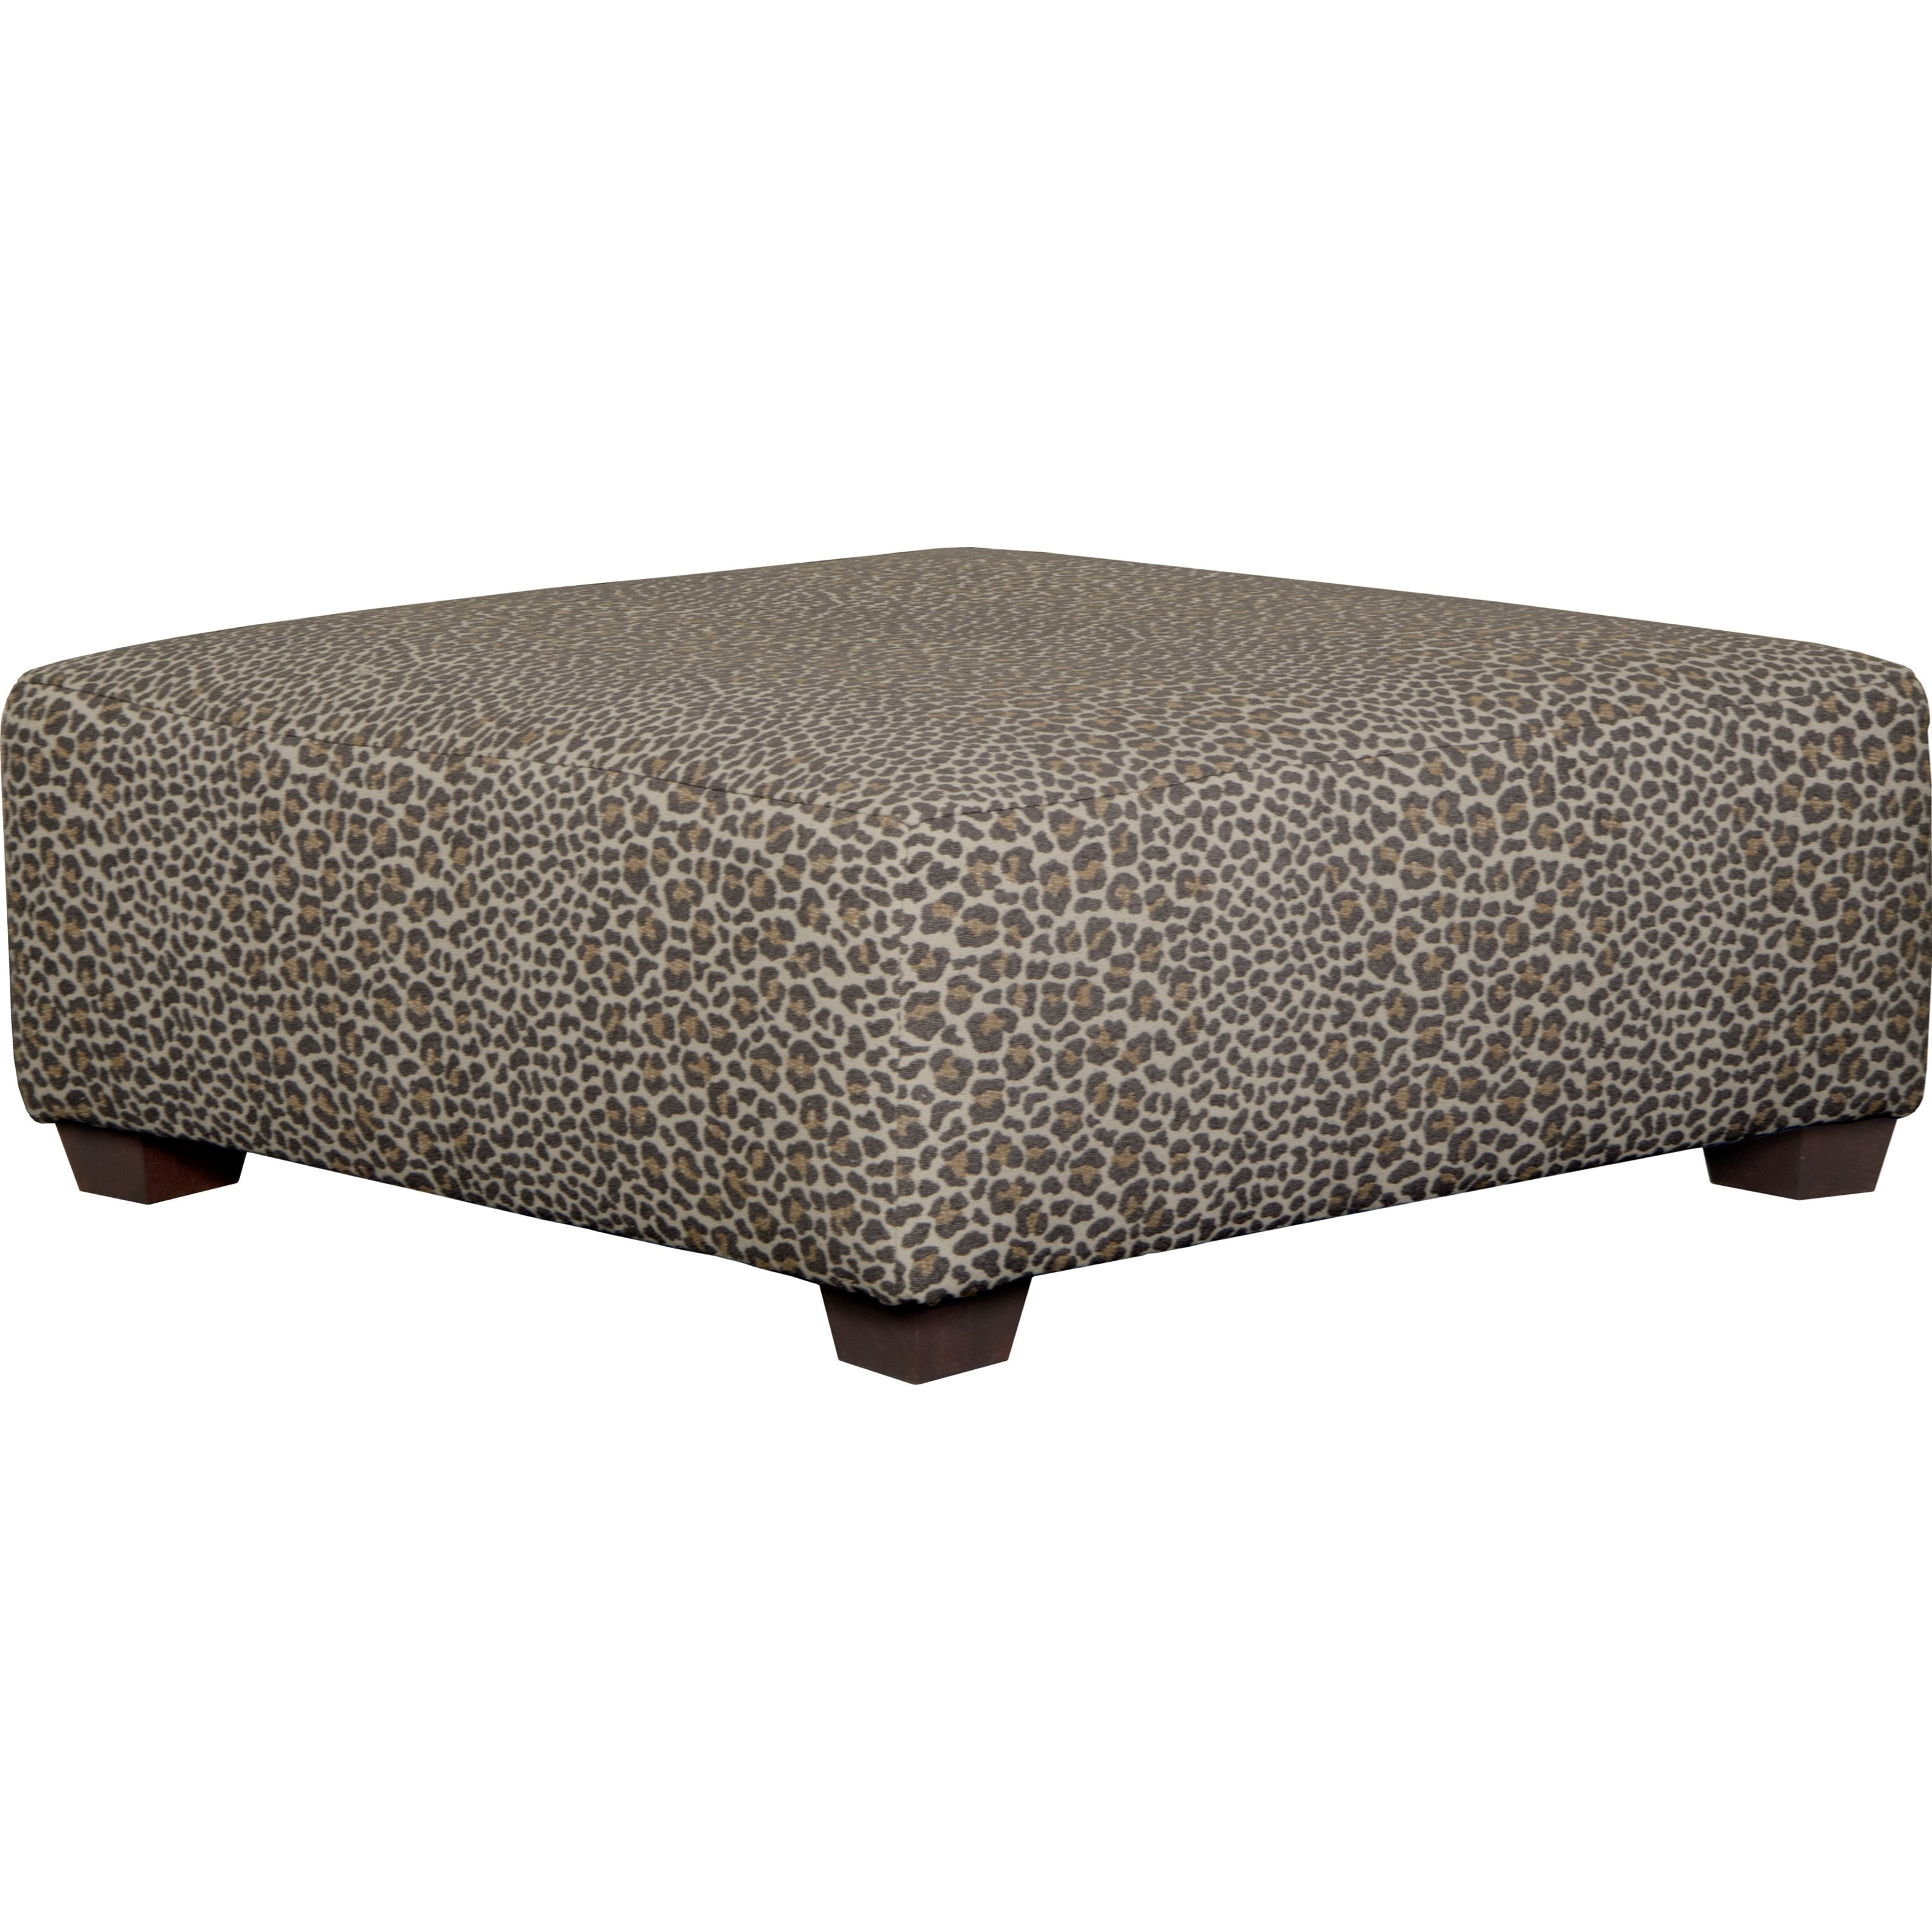 Havana Cocktail Ottoman by Jackson Furniture at Northeast Factory Direct